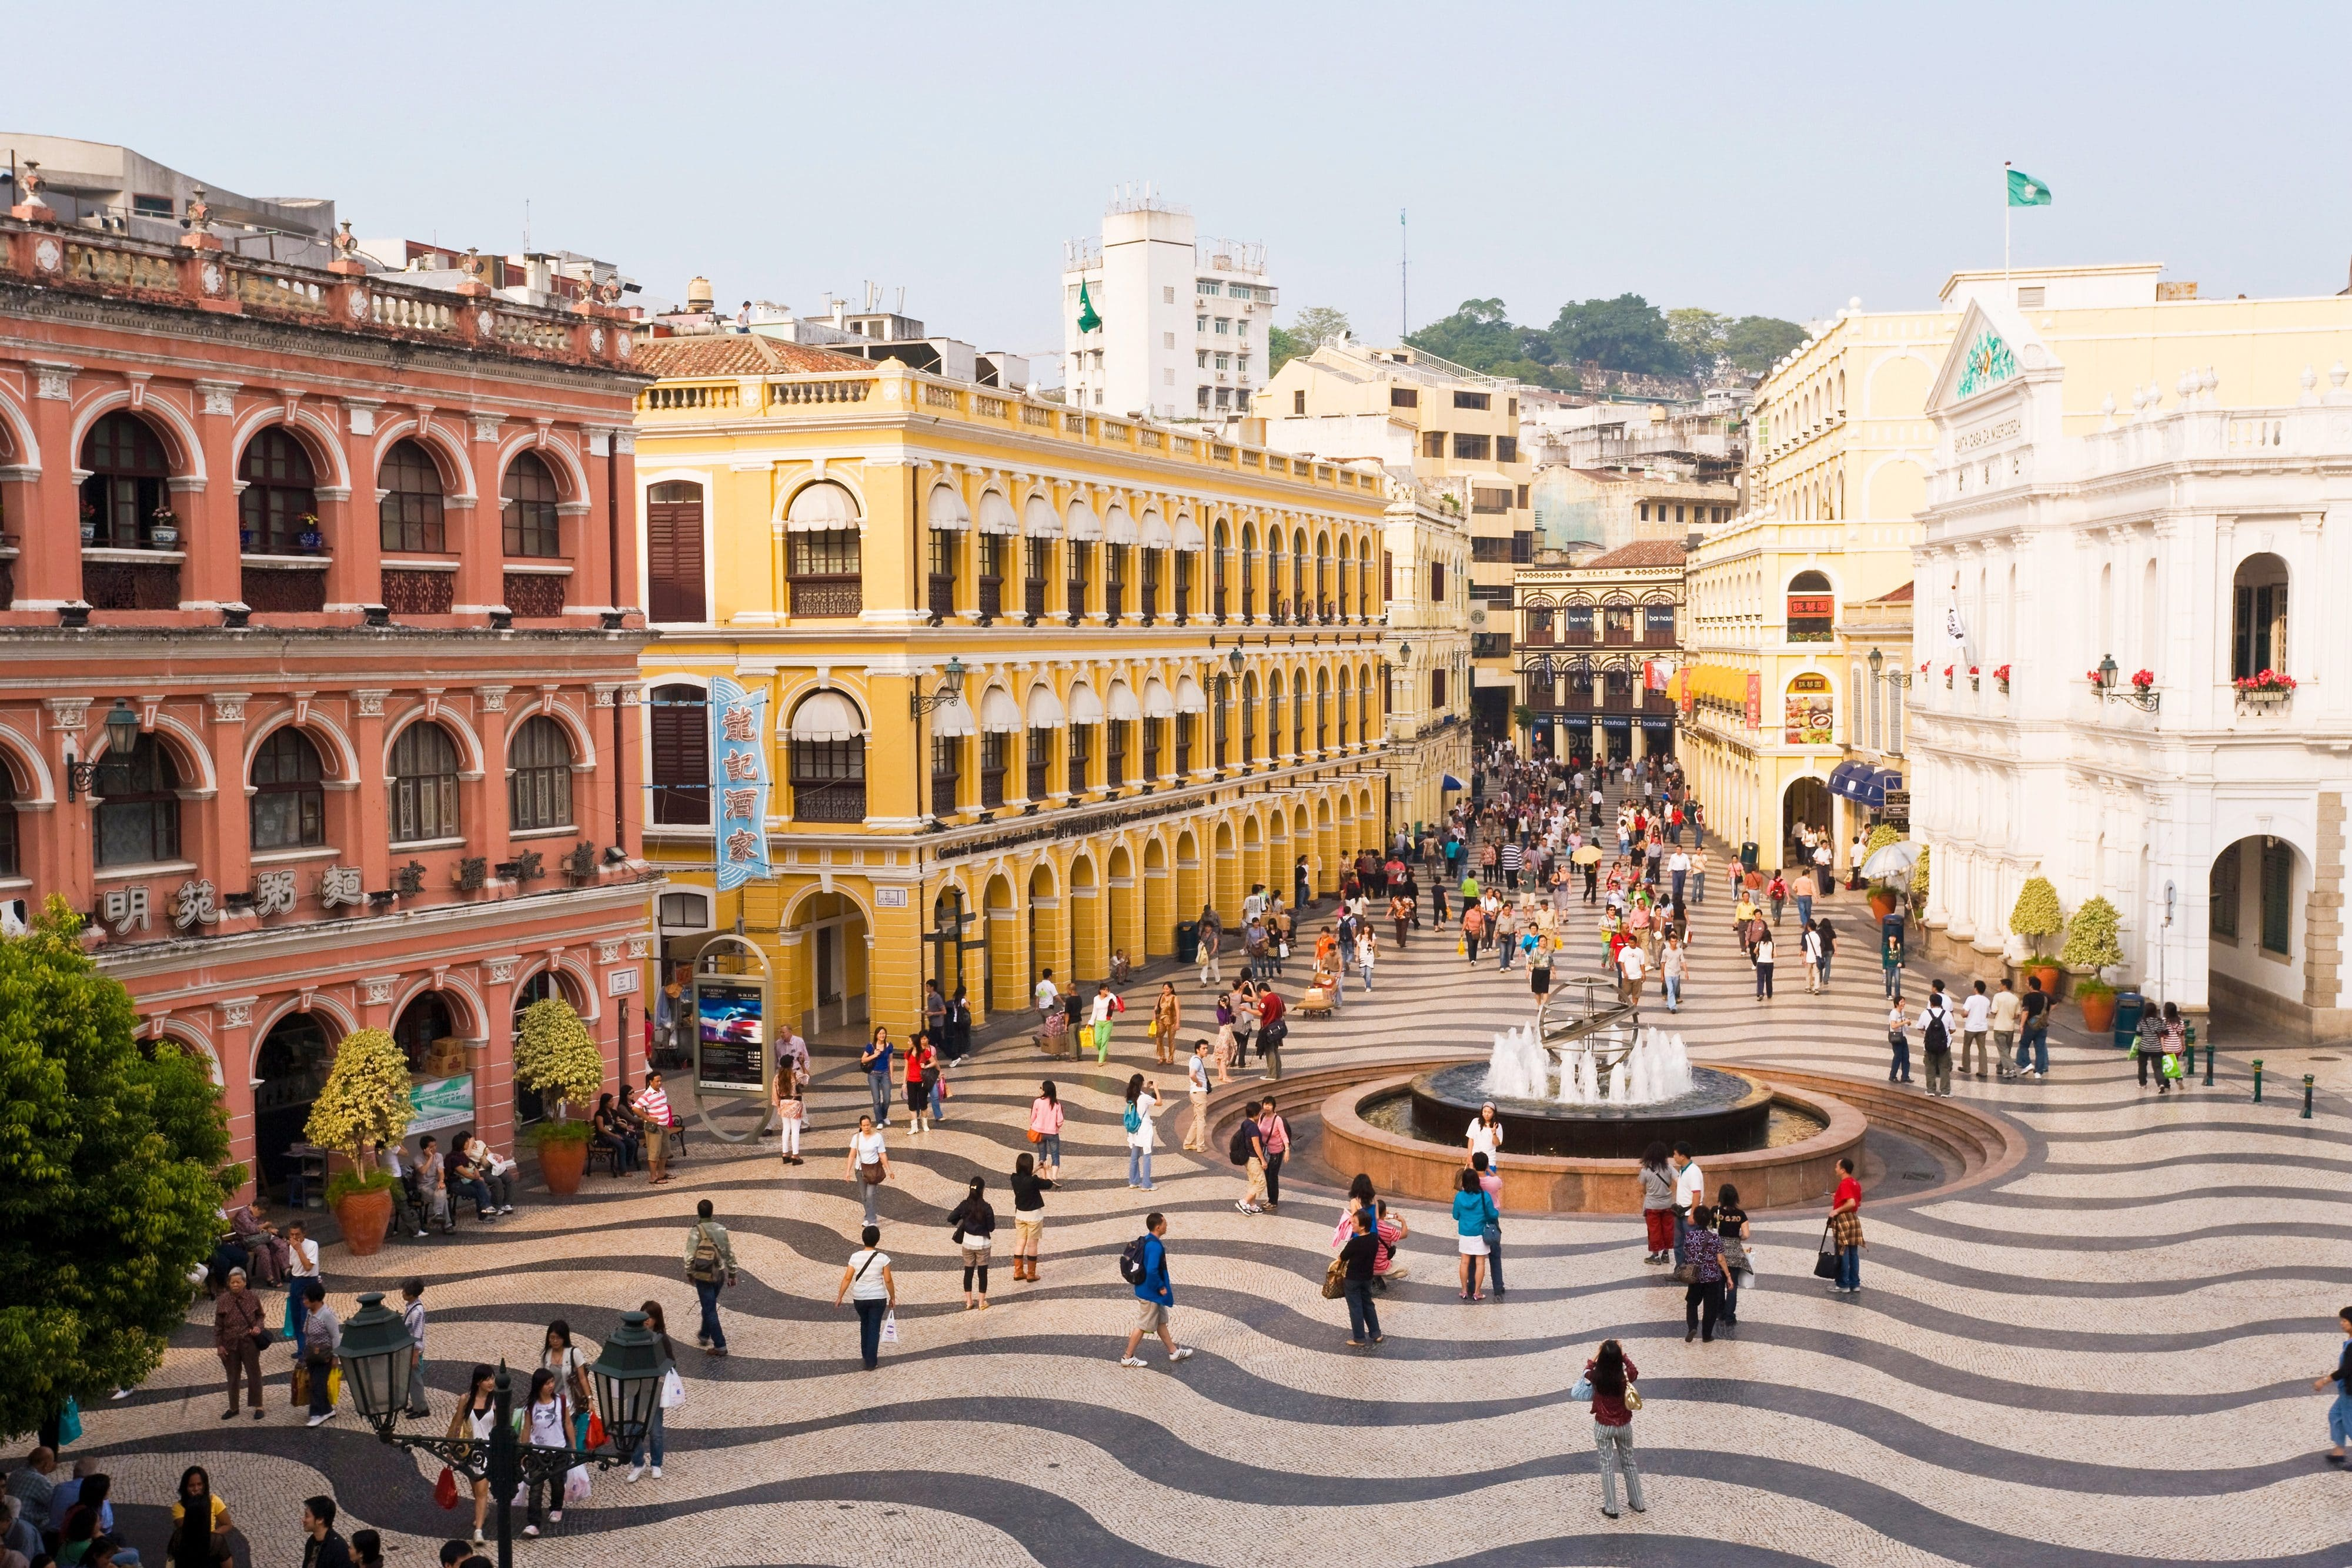 View of Senado Square in Macau with its tiled pavement and colourful buildings